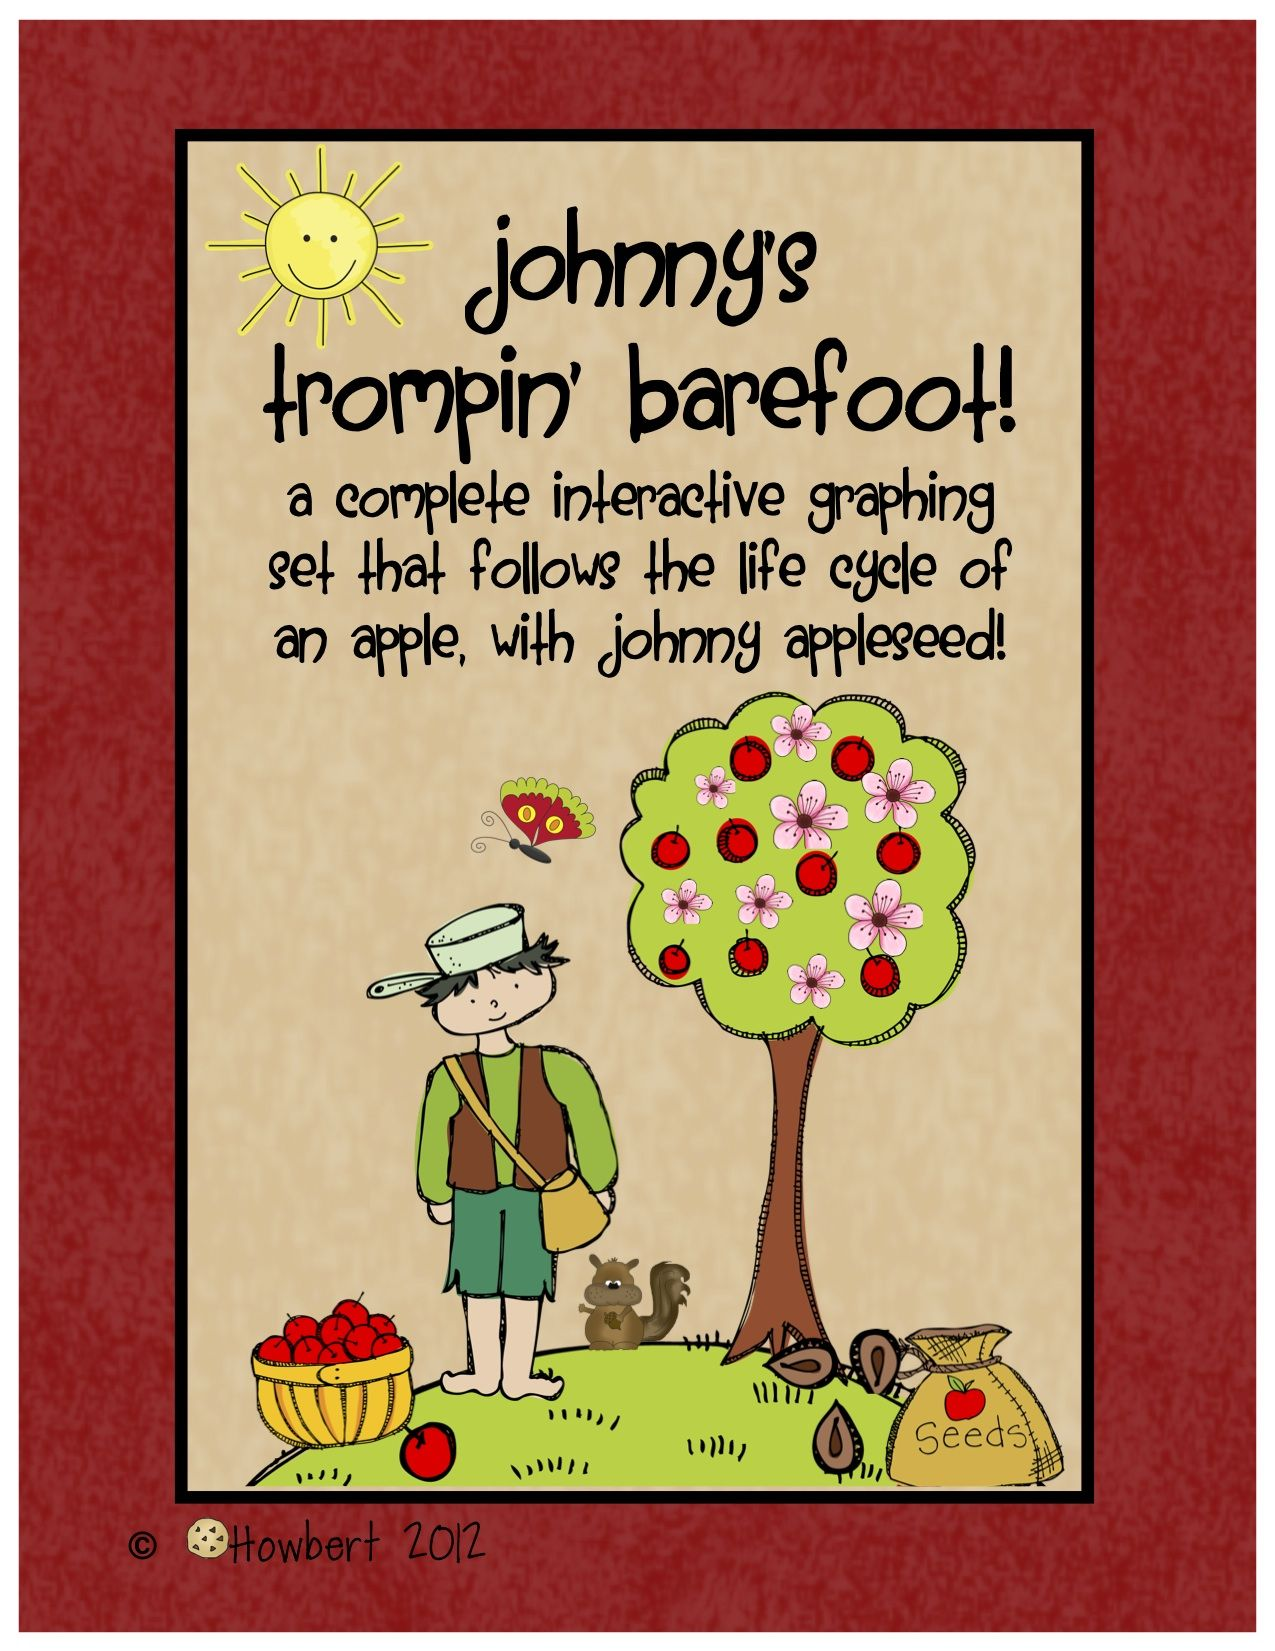 Johnny Appleseed Amp An Apple S Life Cycle Graphing Set